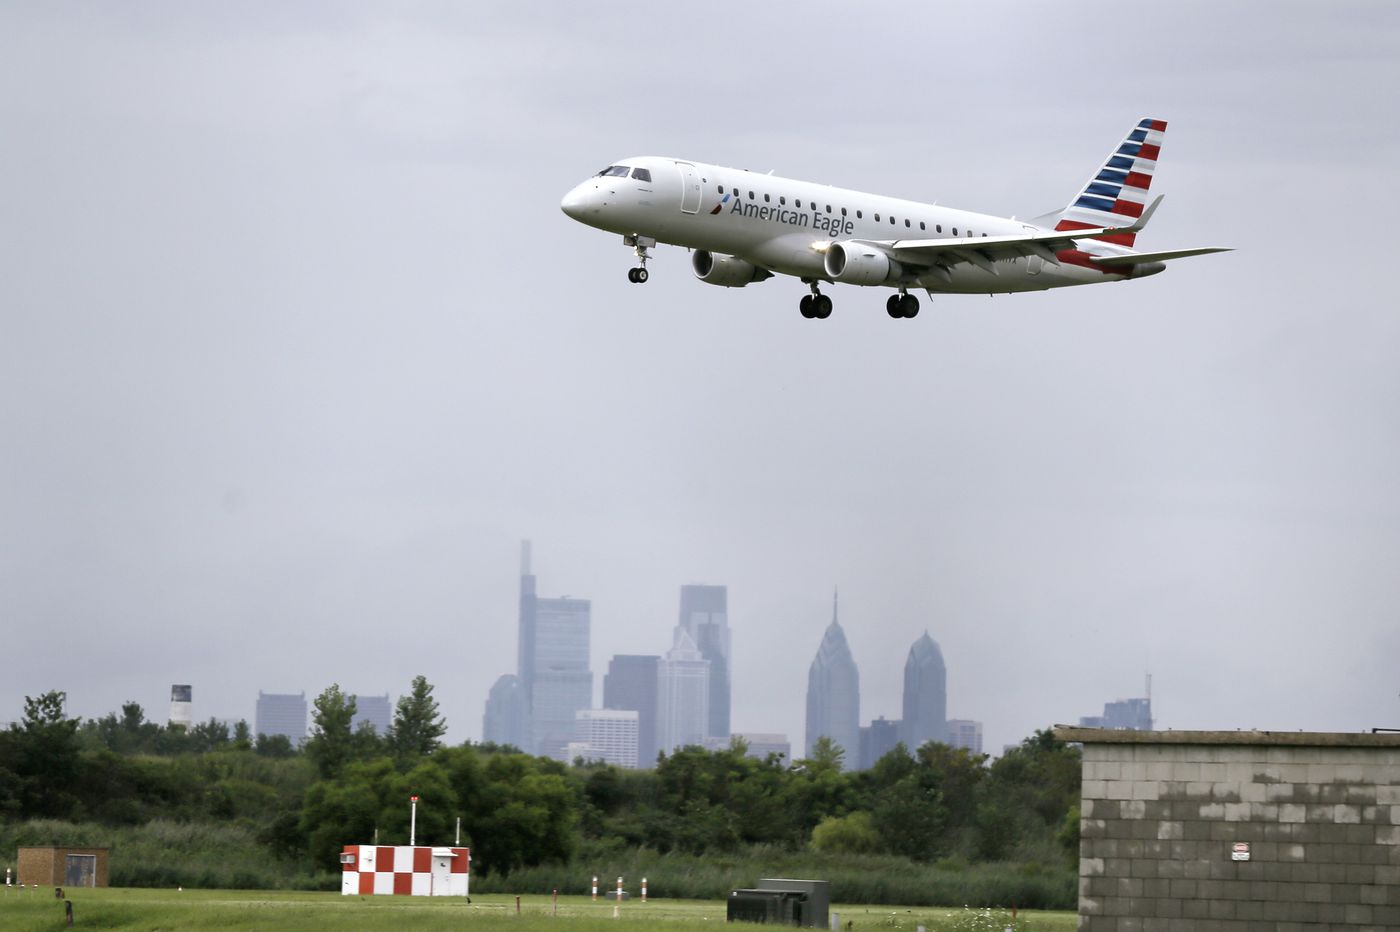 Measles exposure possible at Philadelphia airport, health officials warn